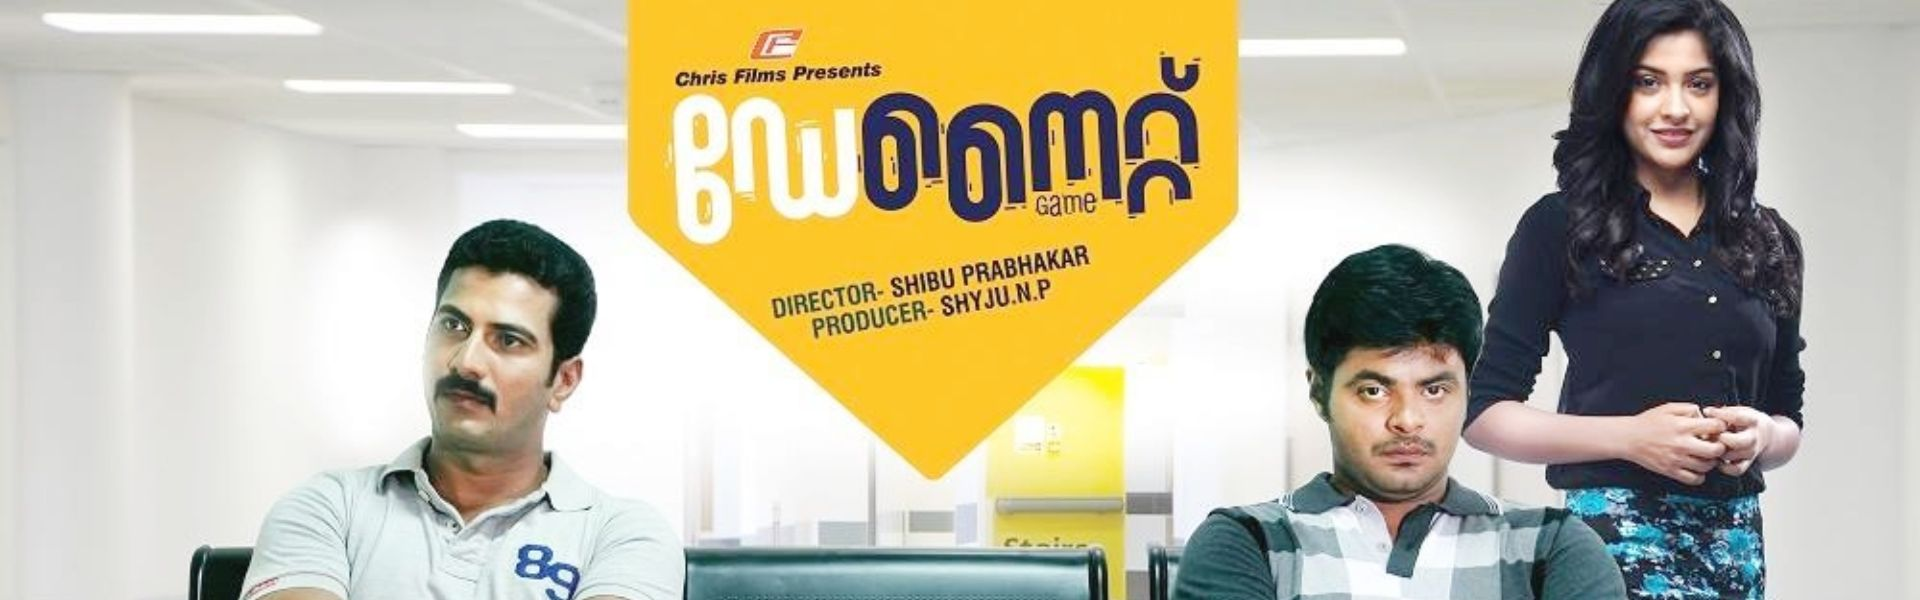 website for malayalam movies